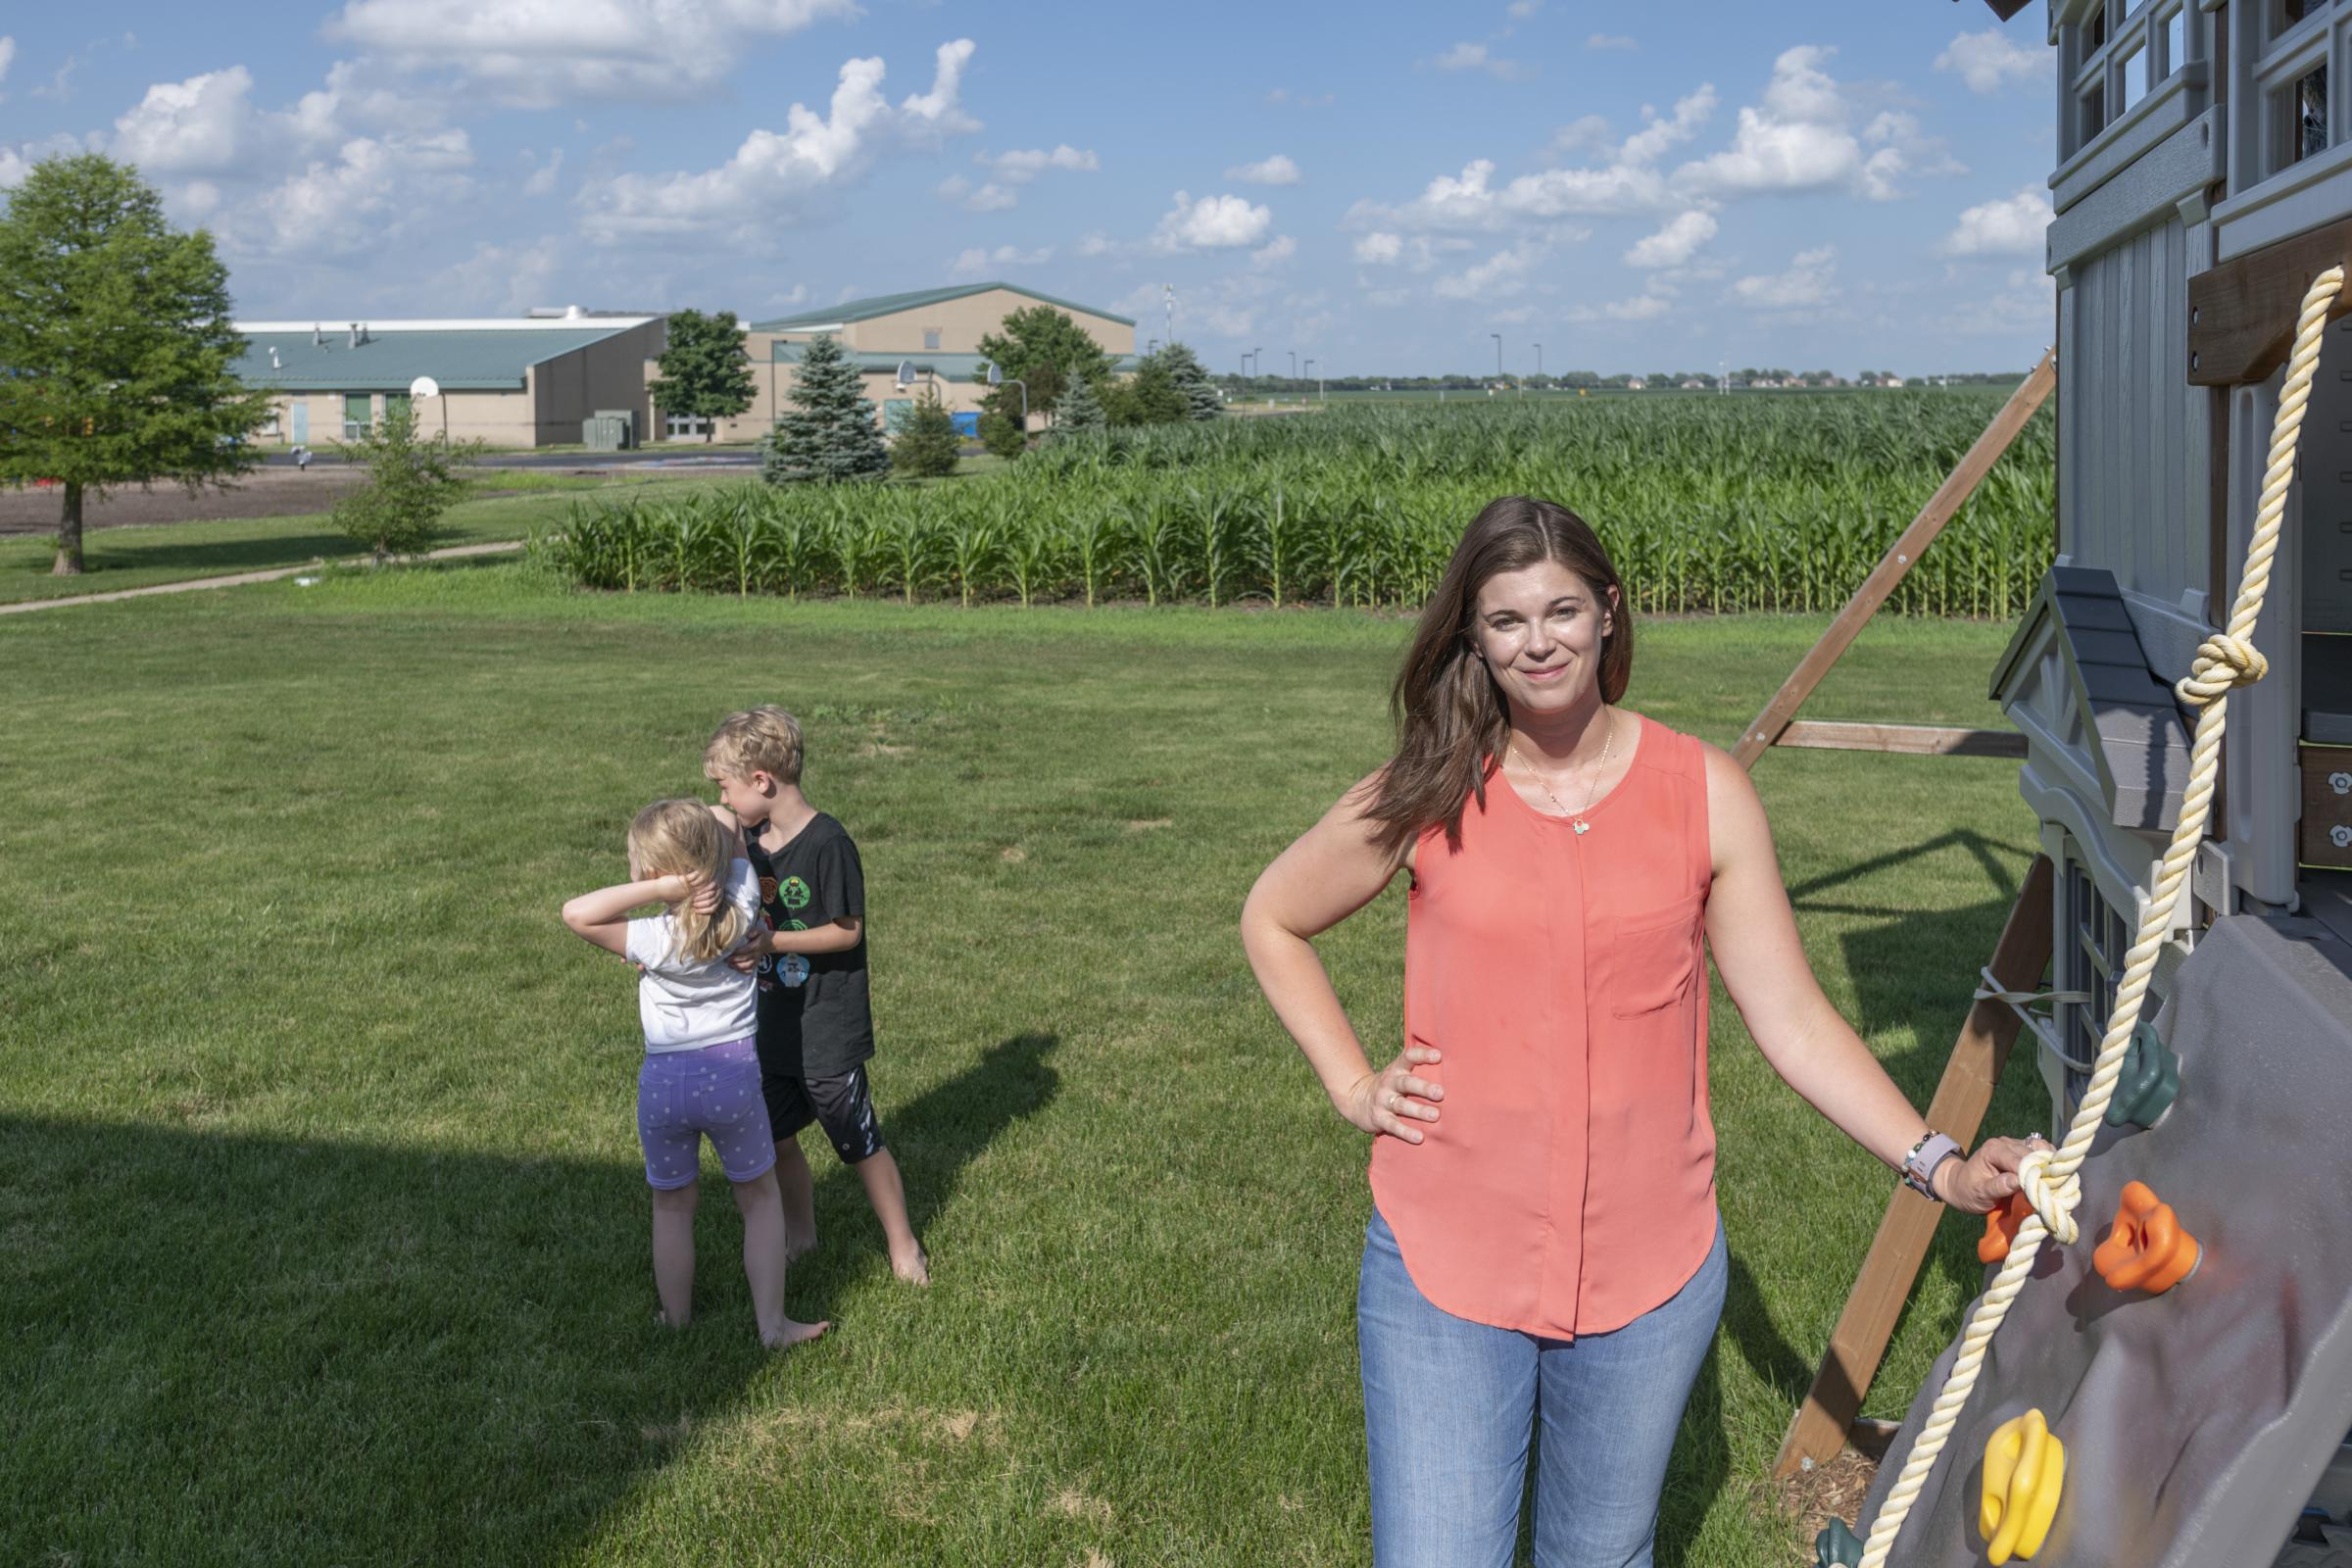 Laura Whetherell has three kids and lives next to a cornfield in Champaign, Illinois. Her kids either attend or will attend Barkstall Elementary, which has a playground that borders the same cornfield (back left).DARRELL HOEMANN / MIDWEST CENTER FOR INVESTIGATIVE REPORTING